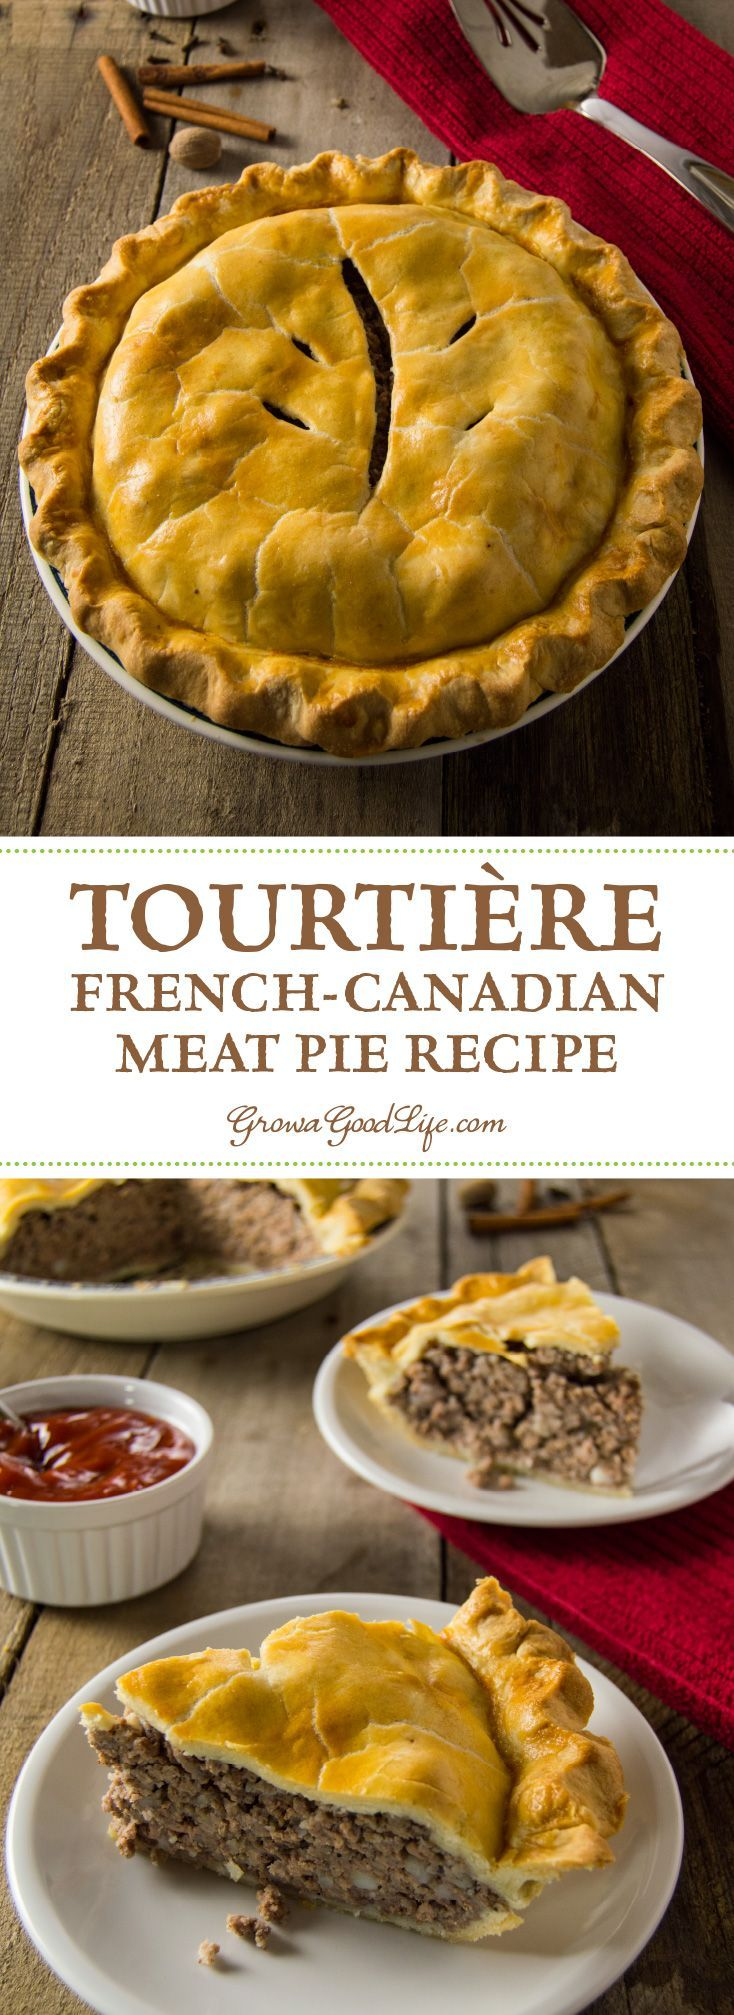 A French-Canadian Meat Pie Tourtière, also known as pork pie or meat pie, is a traditional French-Canadian pie served by generations of French-Canadian families throughout Canada and New England. It is made from a combination of ground meat, onions, savory spices, and baked in a traditional piecrust.Tourtière, also known as p...